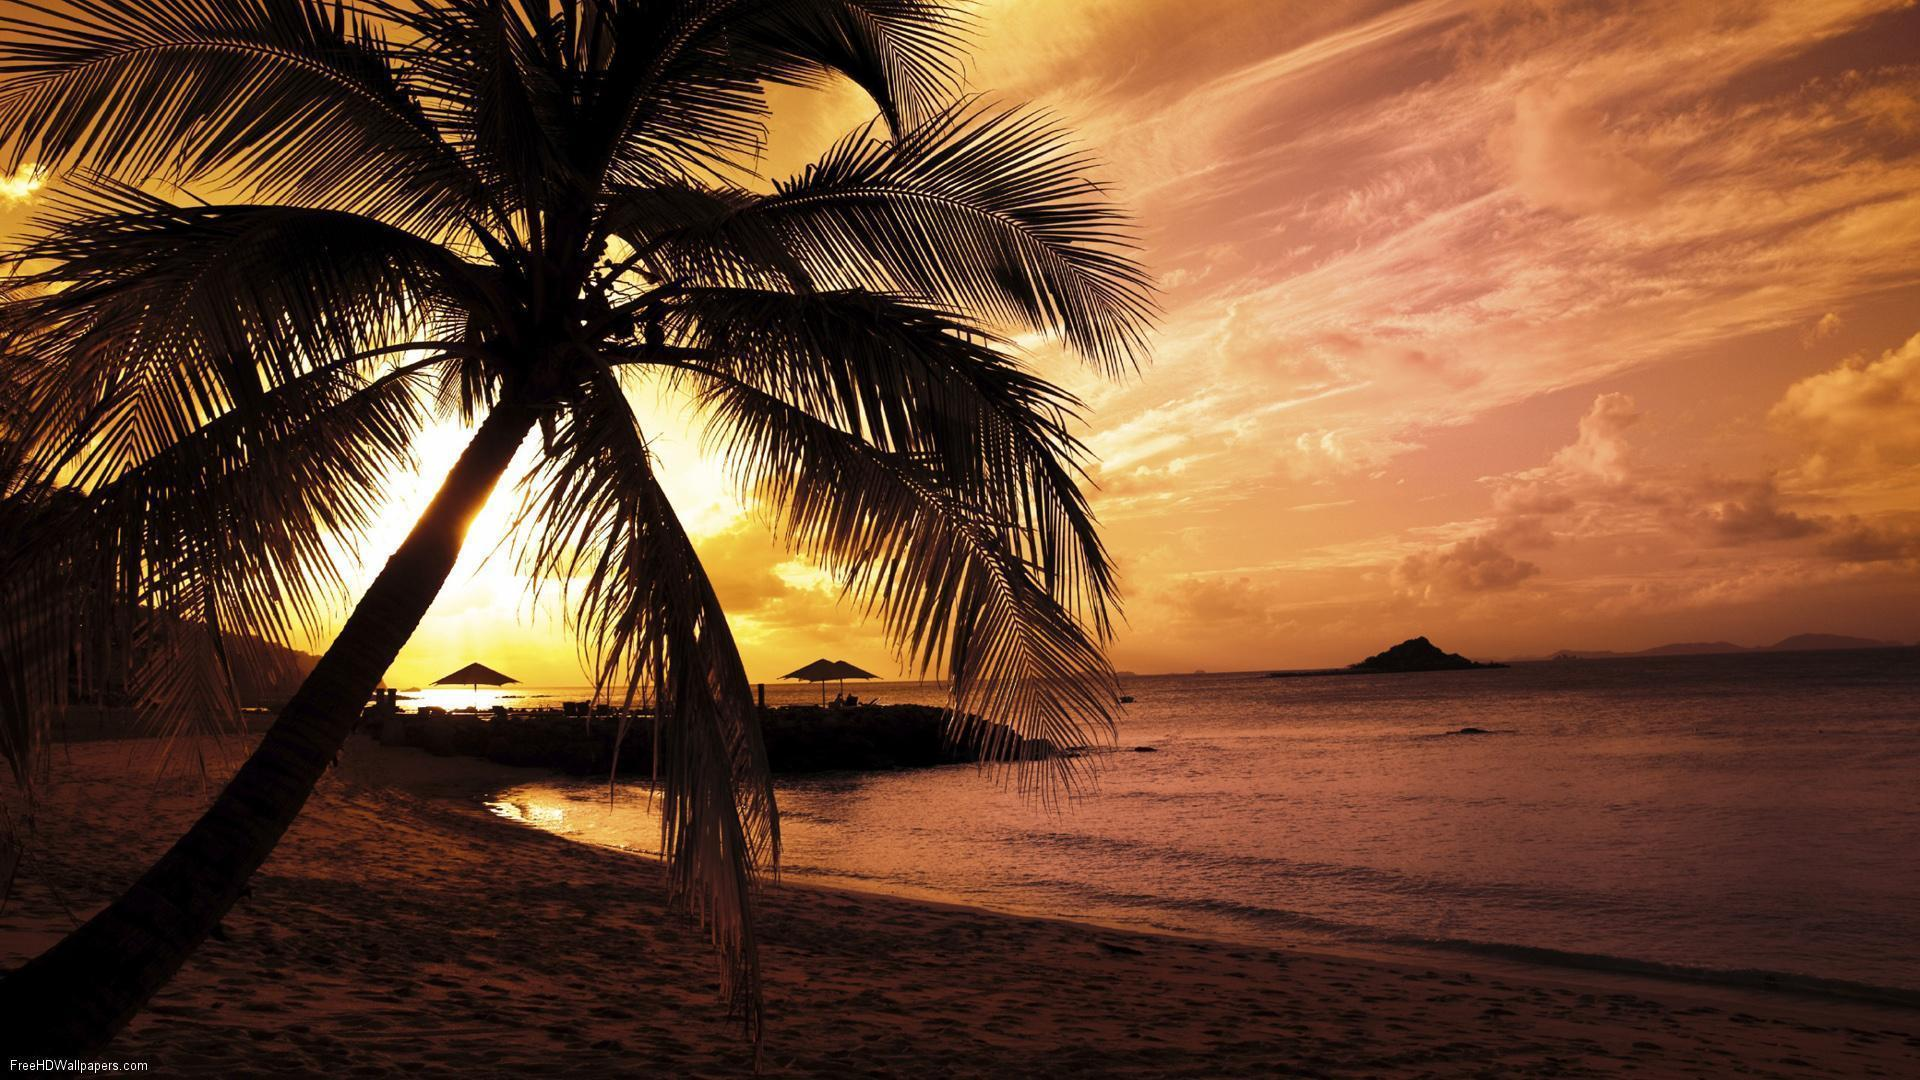 Hd Tropical Island Beach Paradise Wallpapers And Backgrounds: Beach Paradise Wallpapers